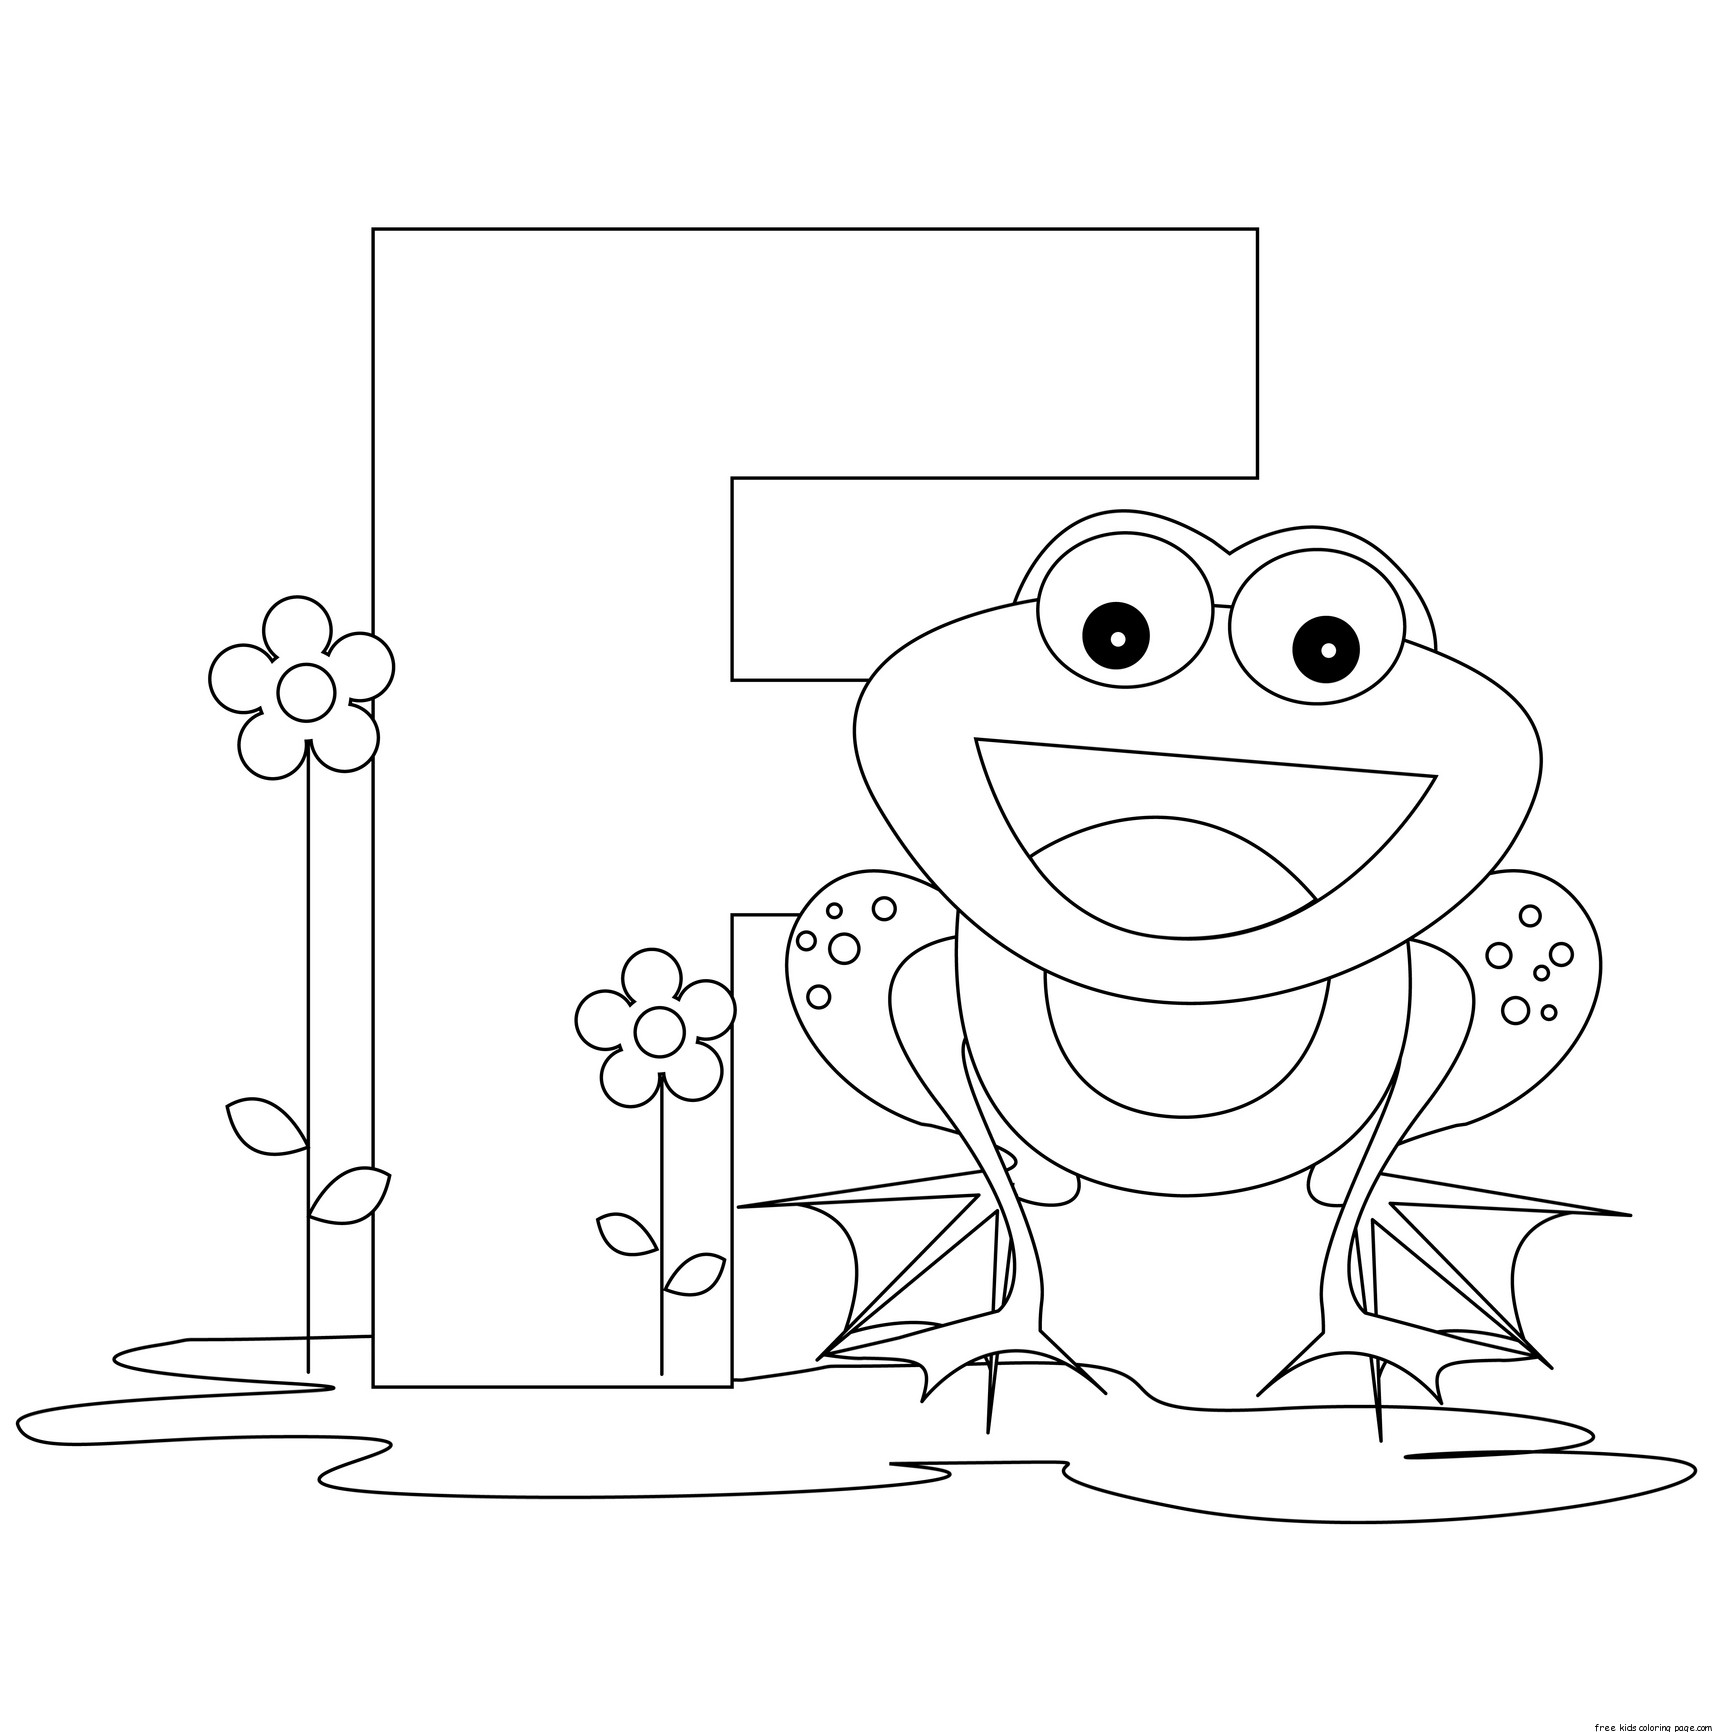 Pritnable alphabet letter f preschool activities for Animal alphabet coloring pages free